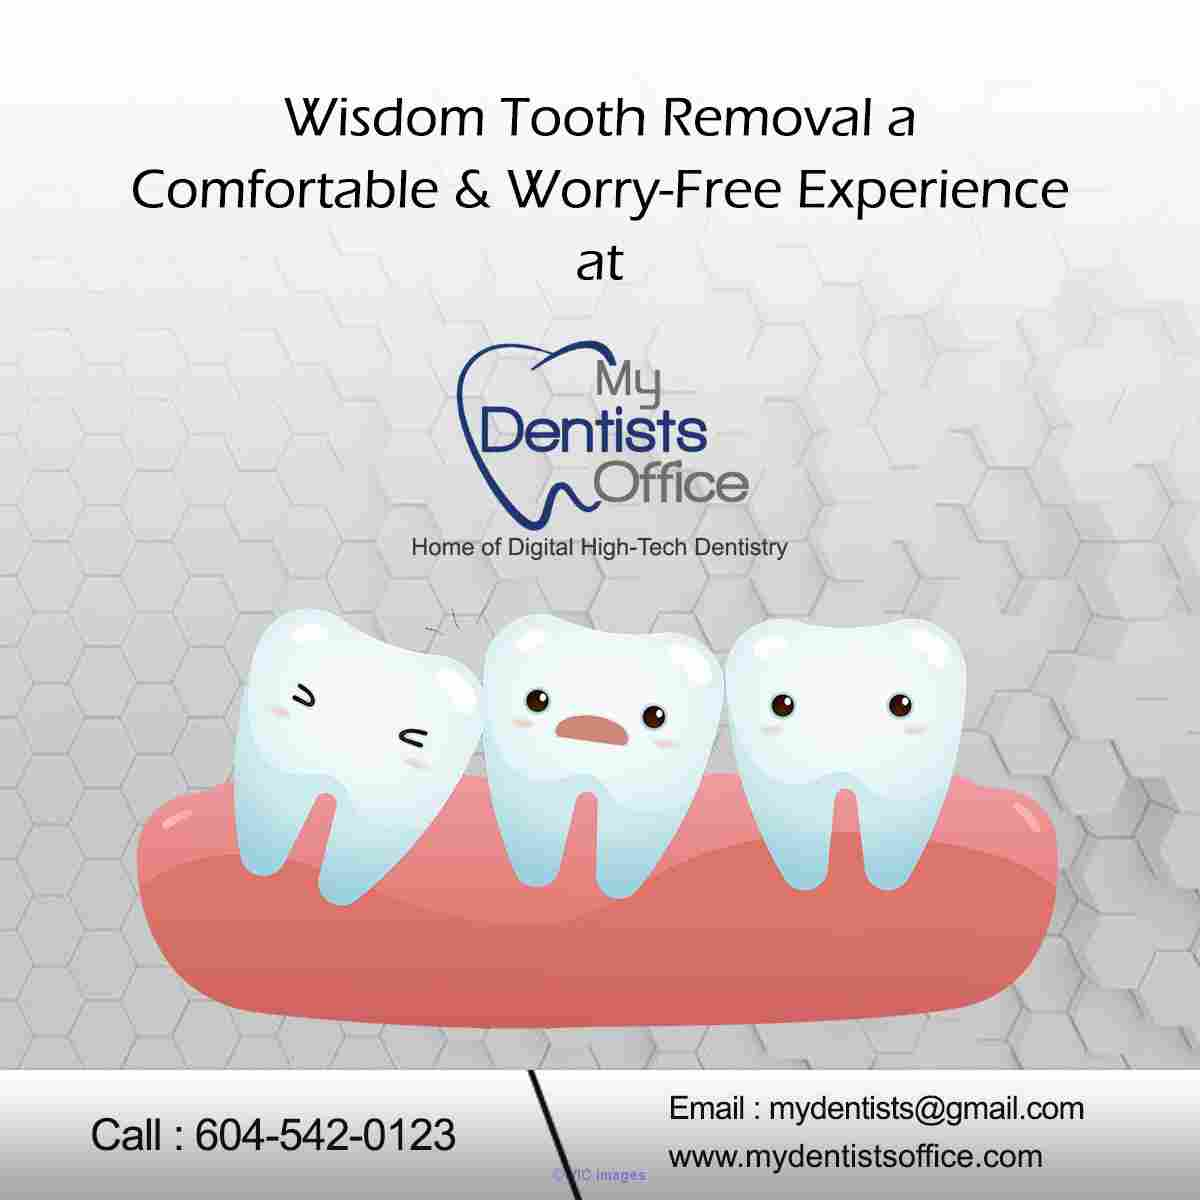 wisdom teeth removal surrey bc - best dentist in surrey ottawa